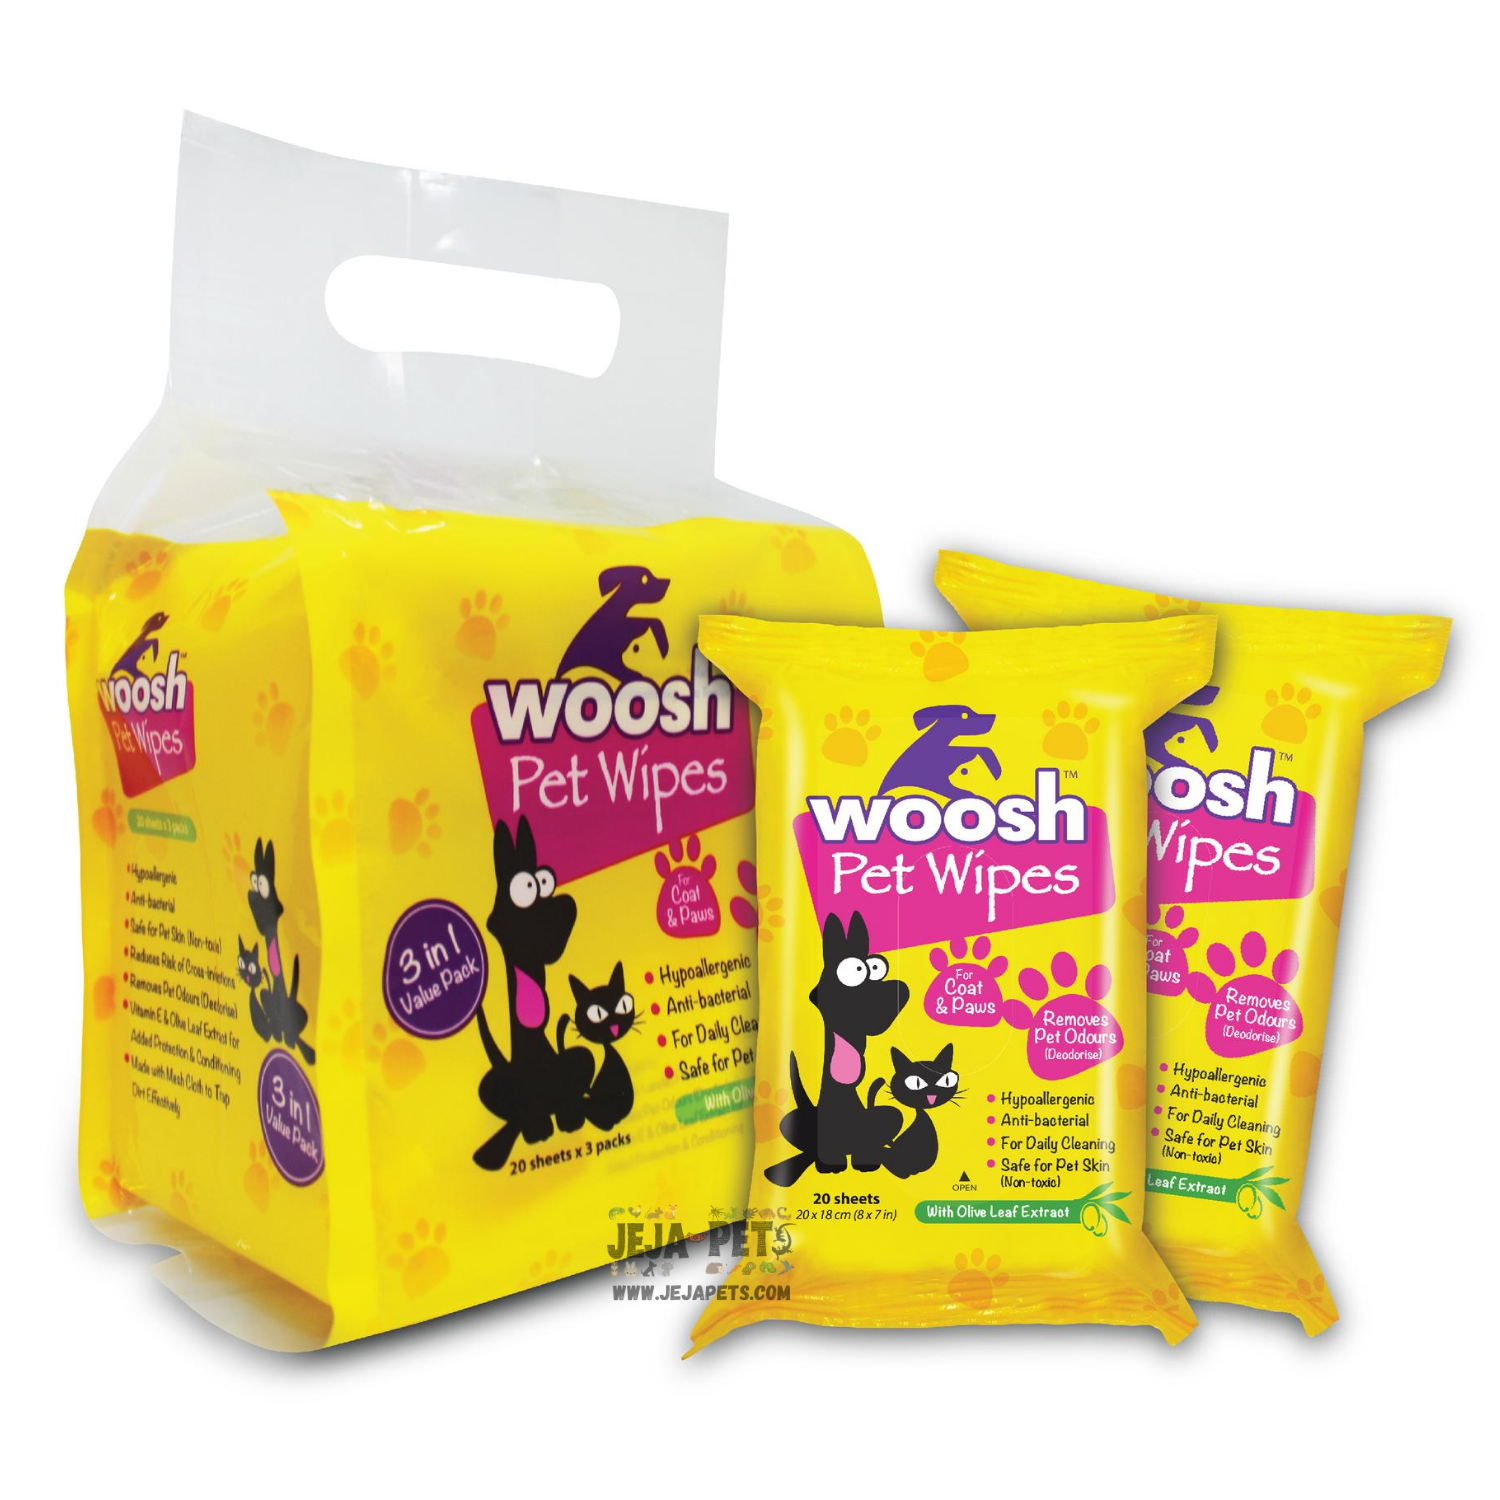 Woosh Pet Wipes - 3 x 20 sheets